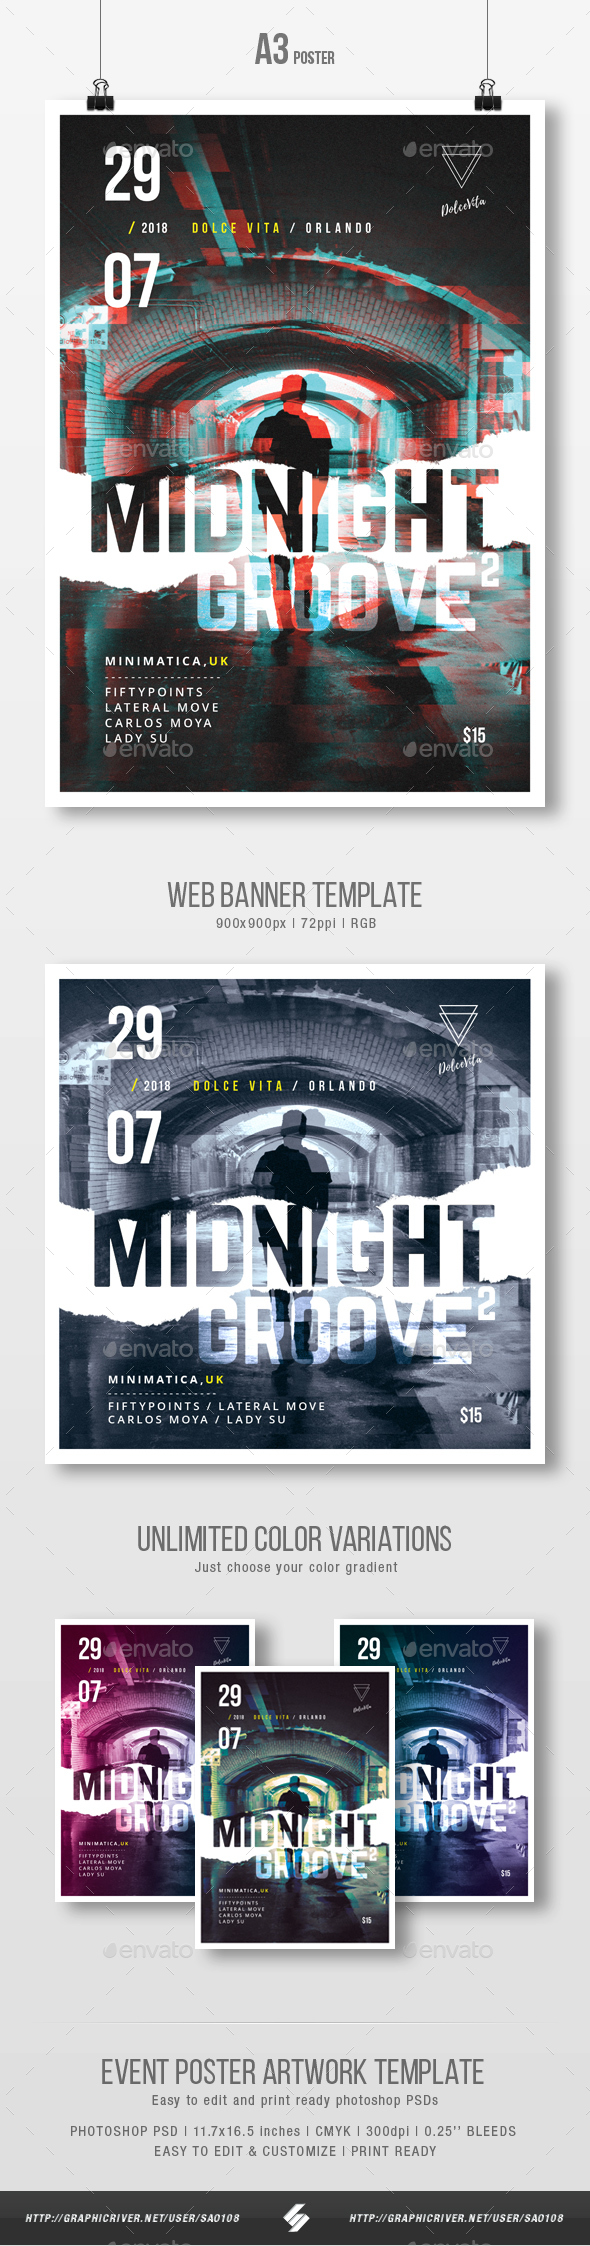 Midnight Groove 2 - Underground Party Flyer / Poster Template A3 - Clubs & Parties Events